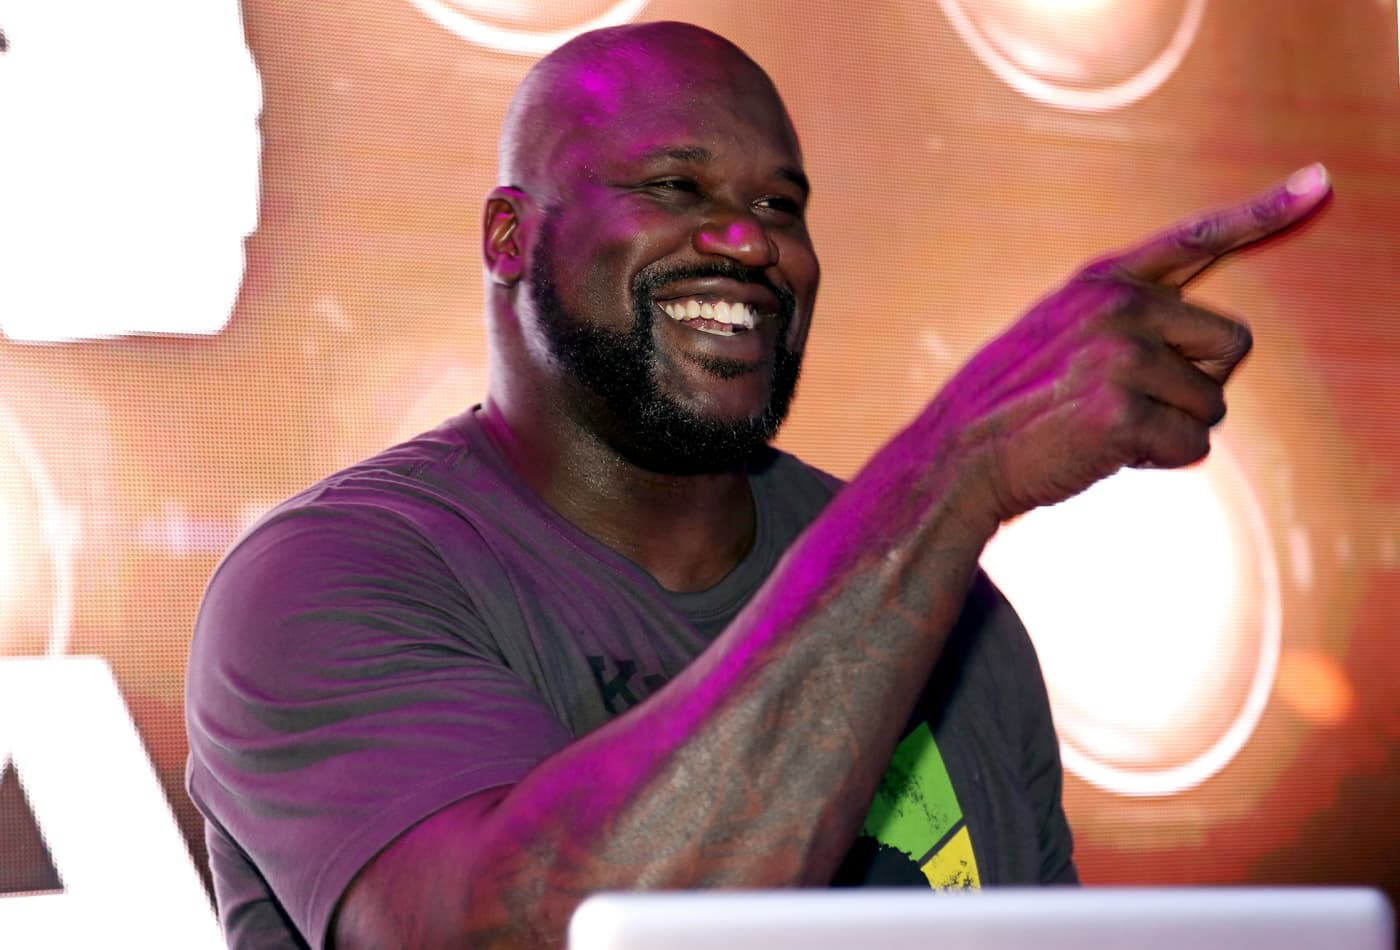 Why Shaquille O'Neal won't tell you who he's voting for